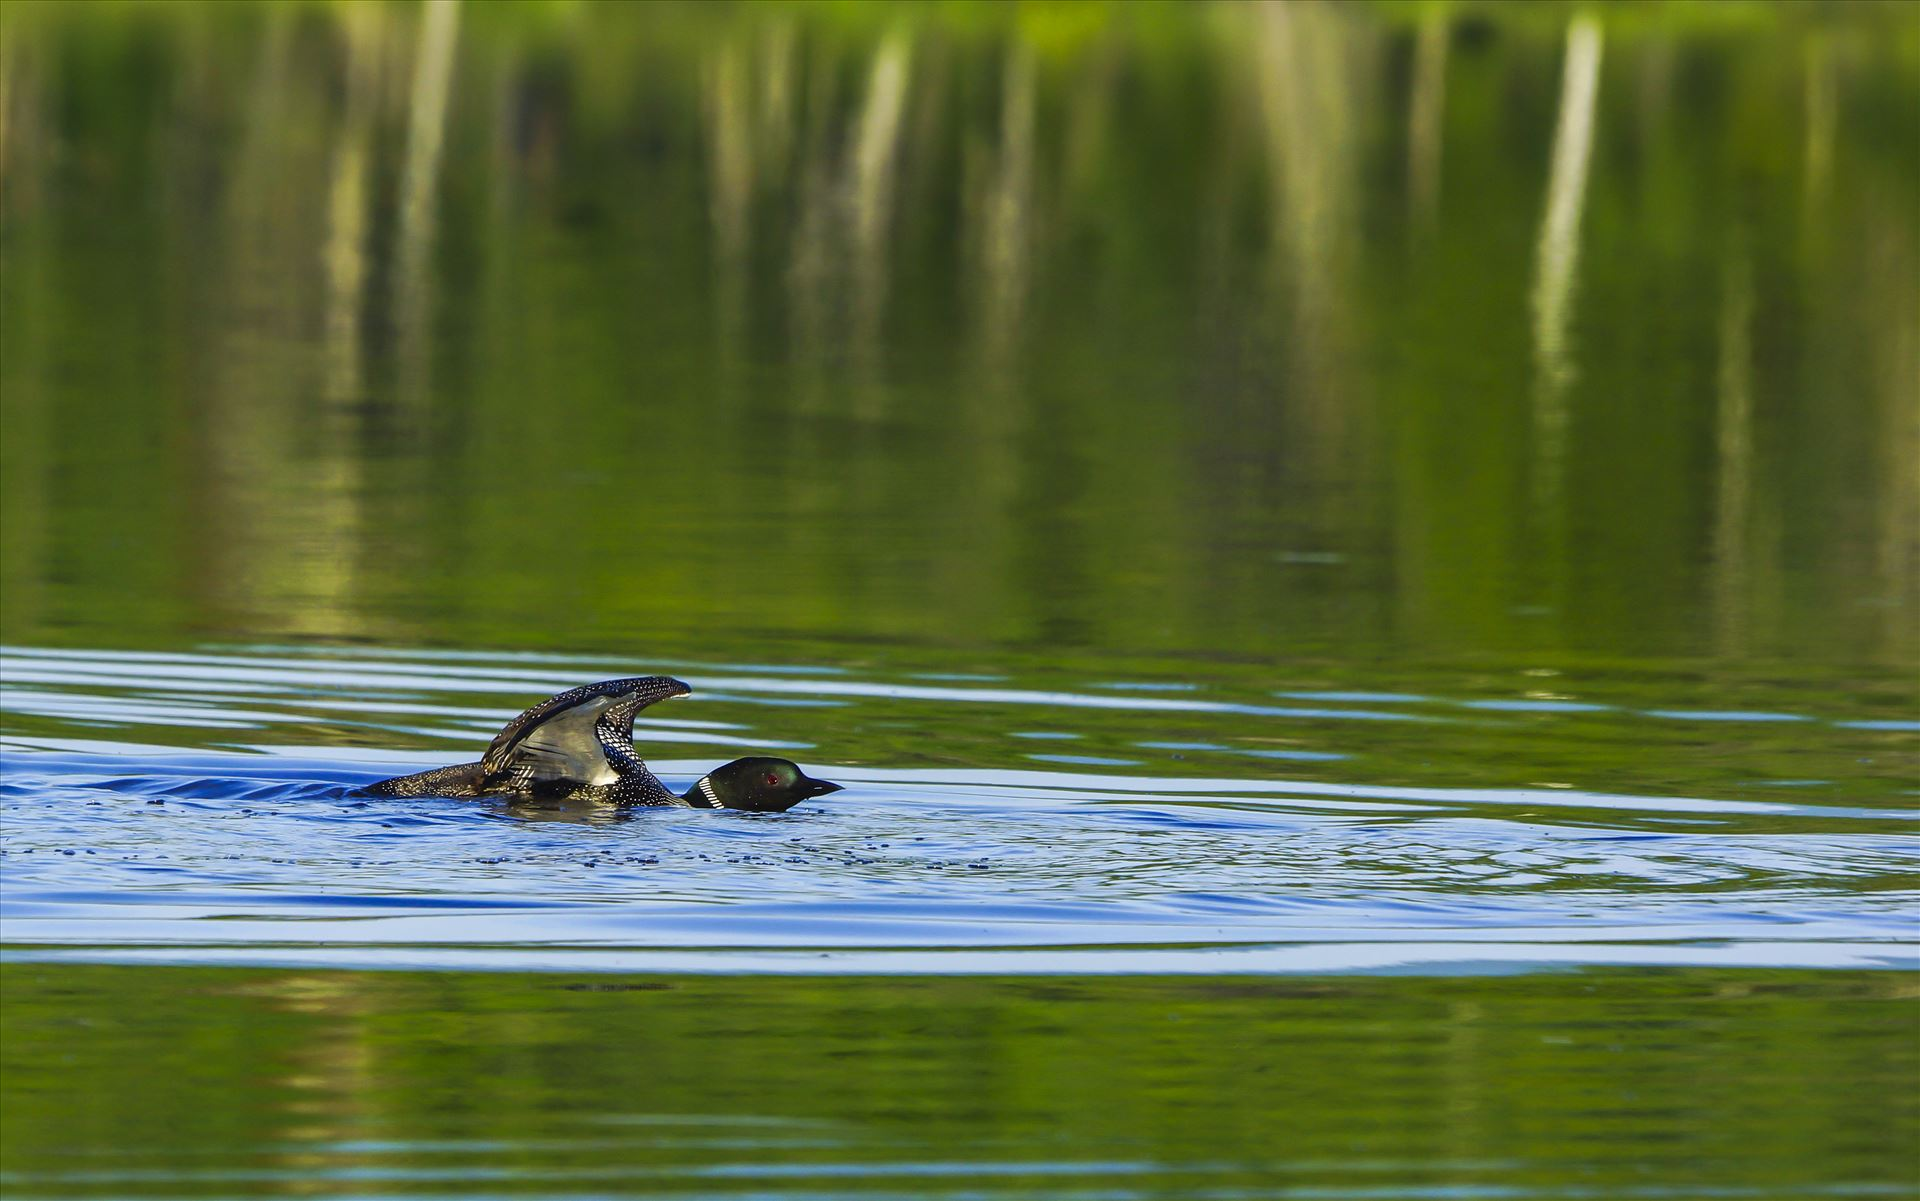 Common Loon - Loon done chasing 8 ducklings by Buckmaster